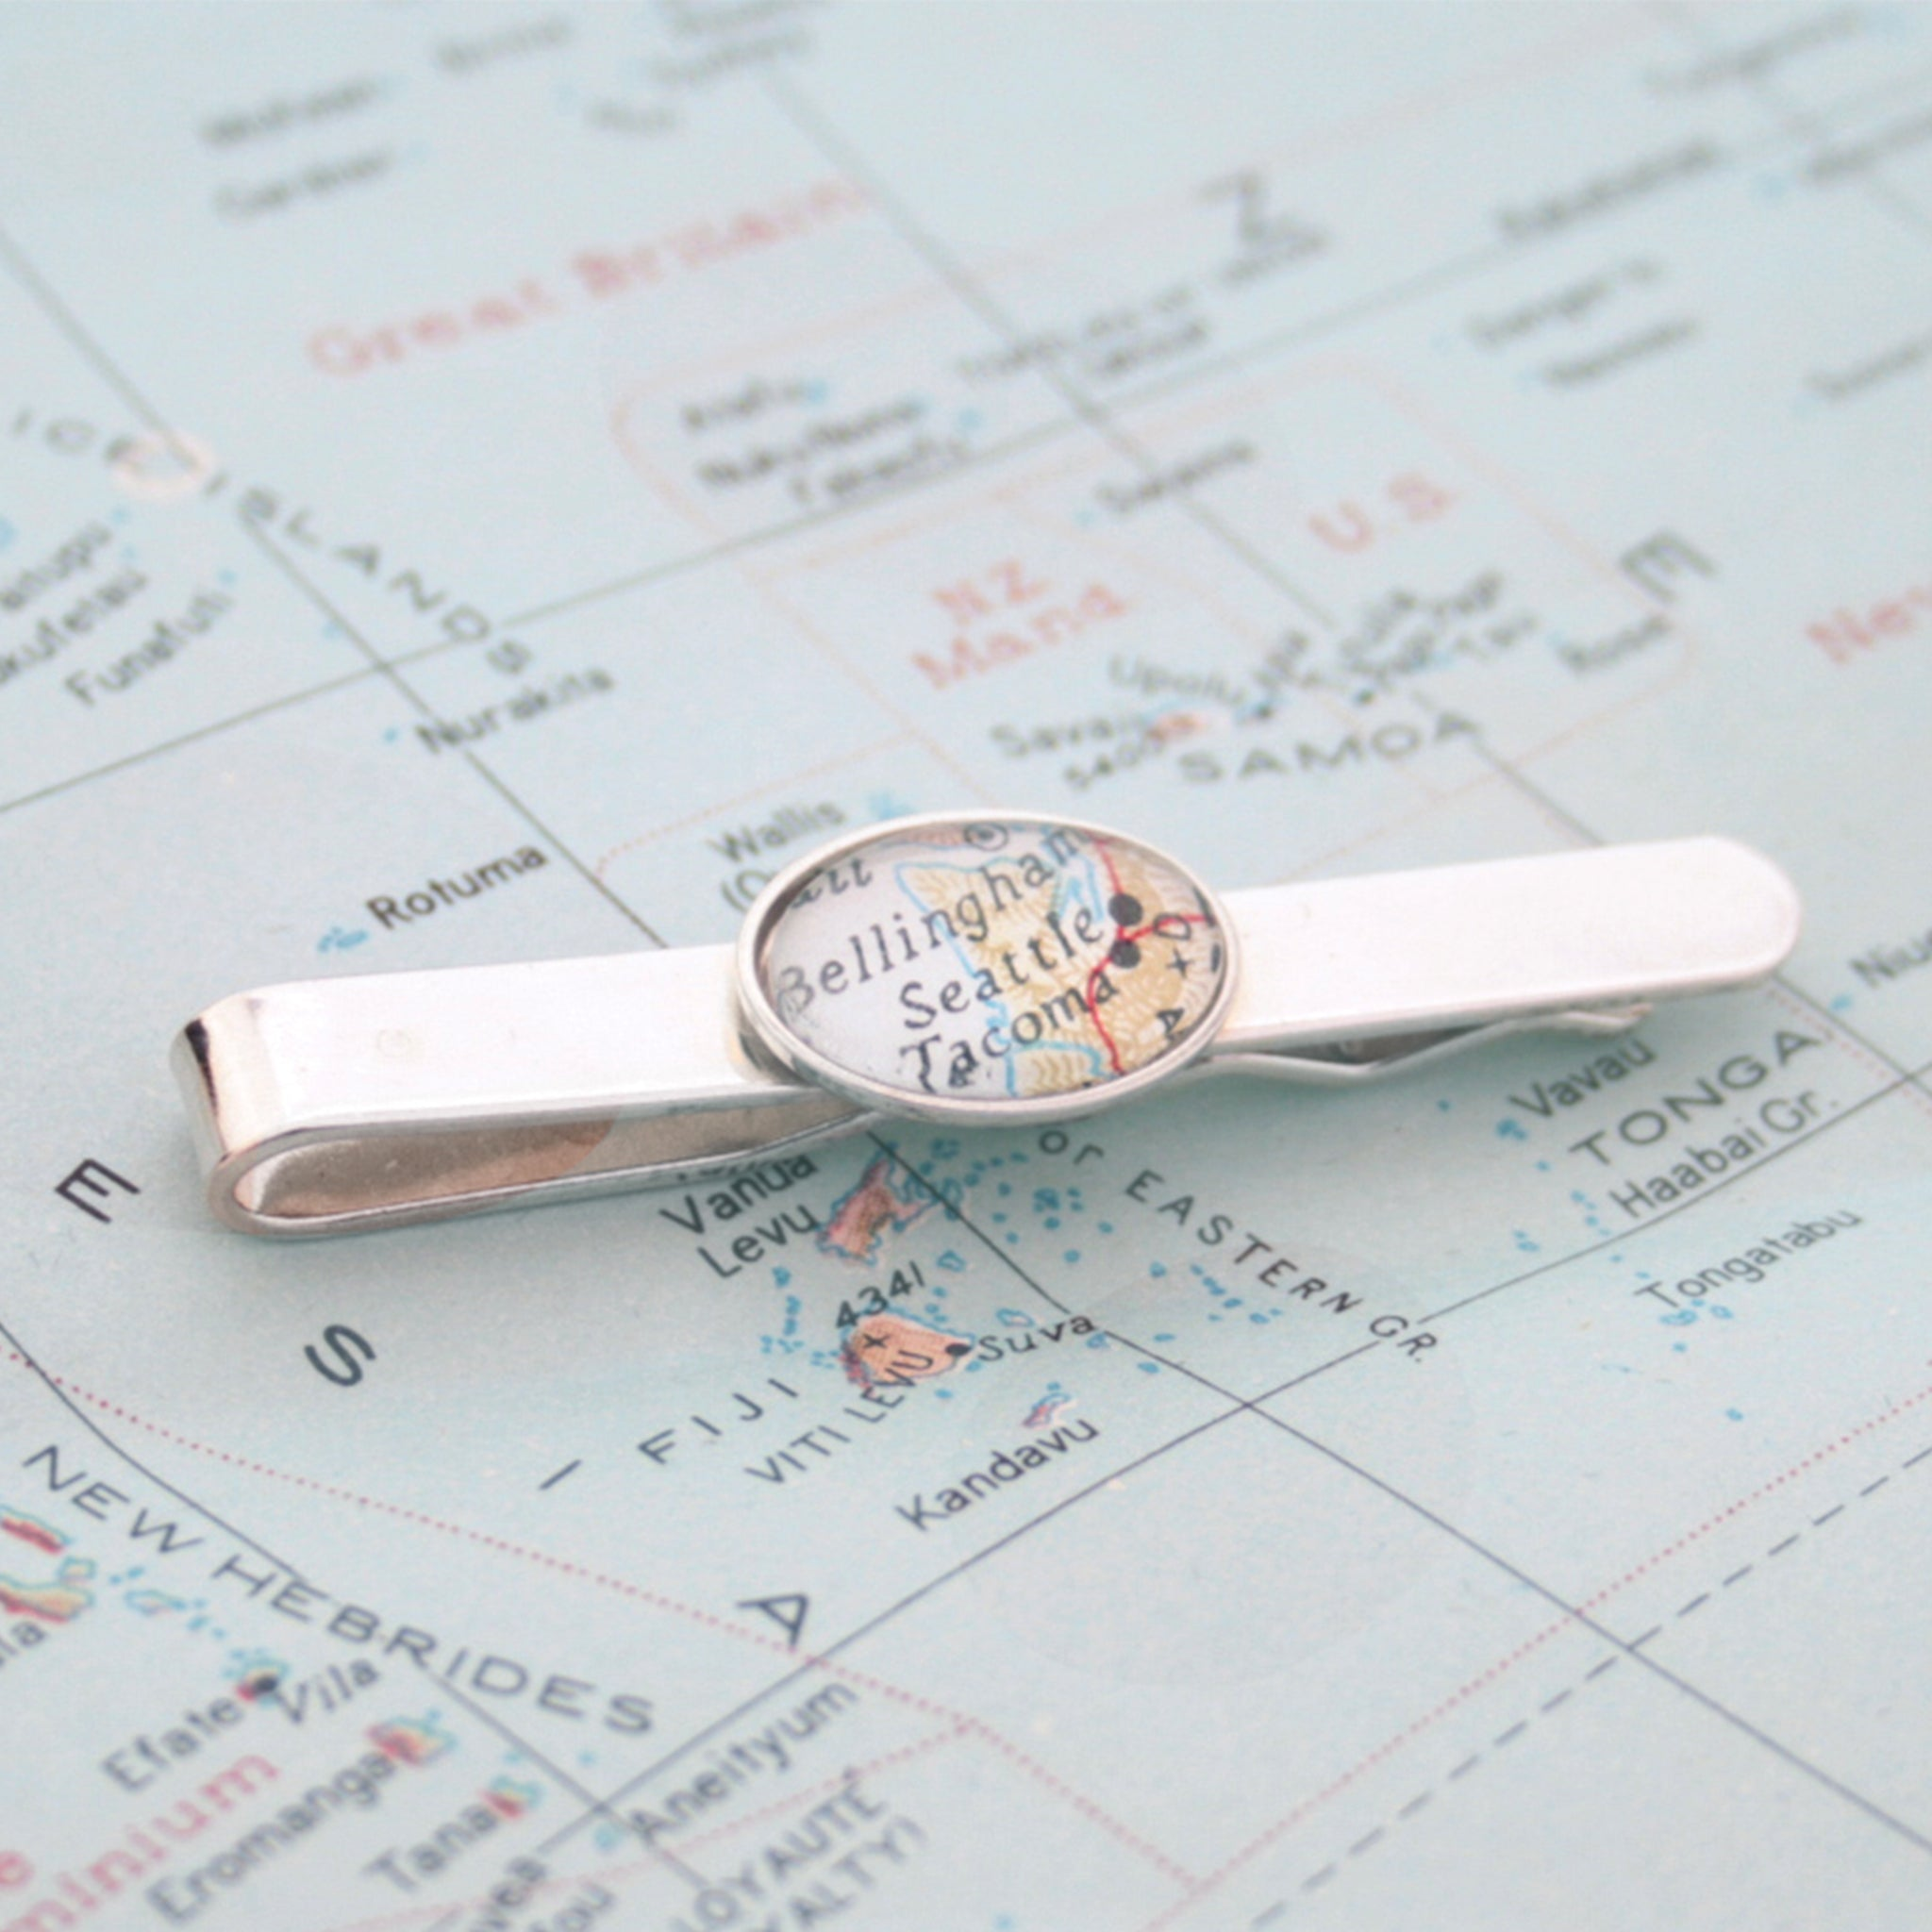 Sterling Silver tie clip that features custom map location